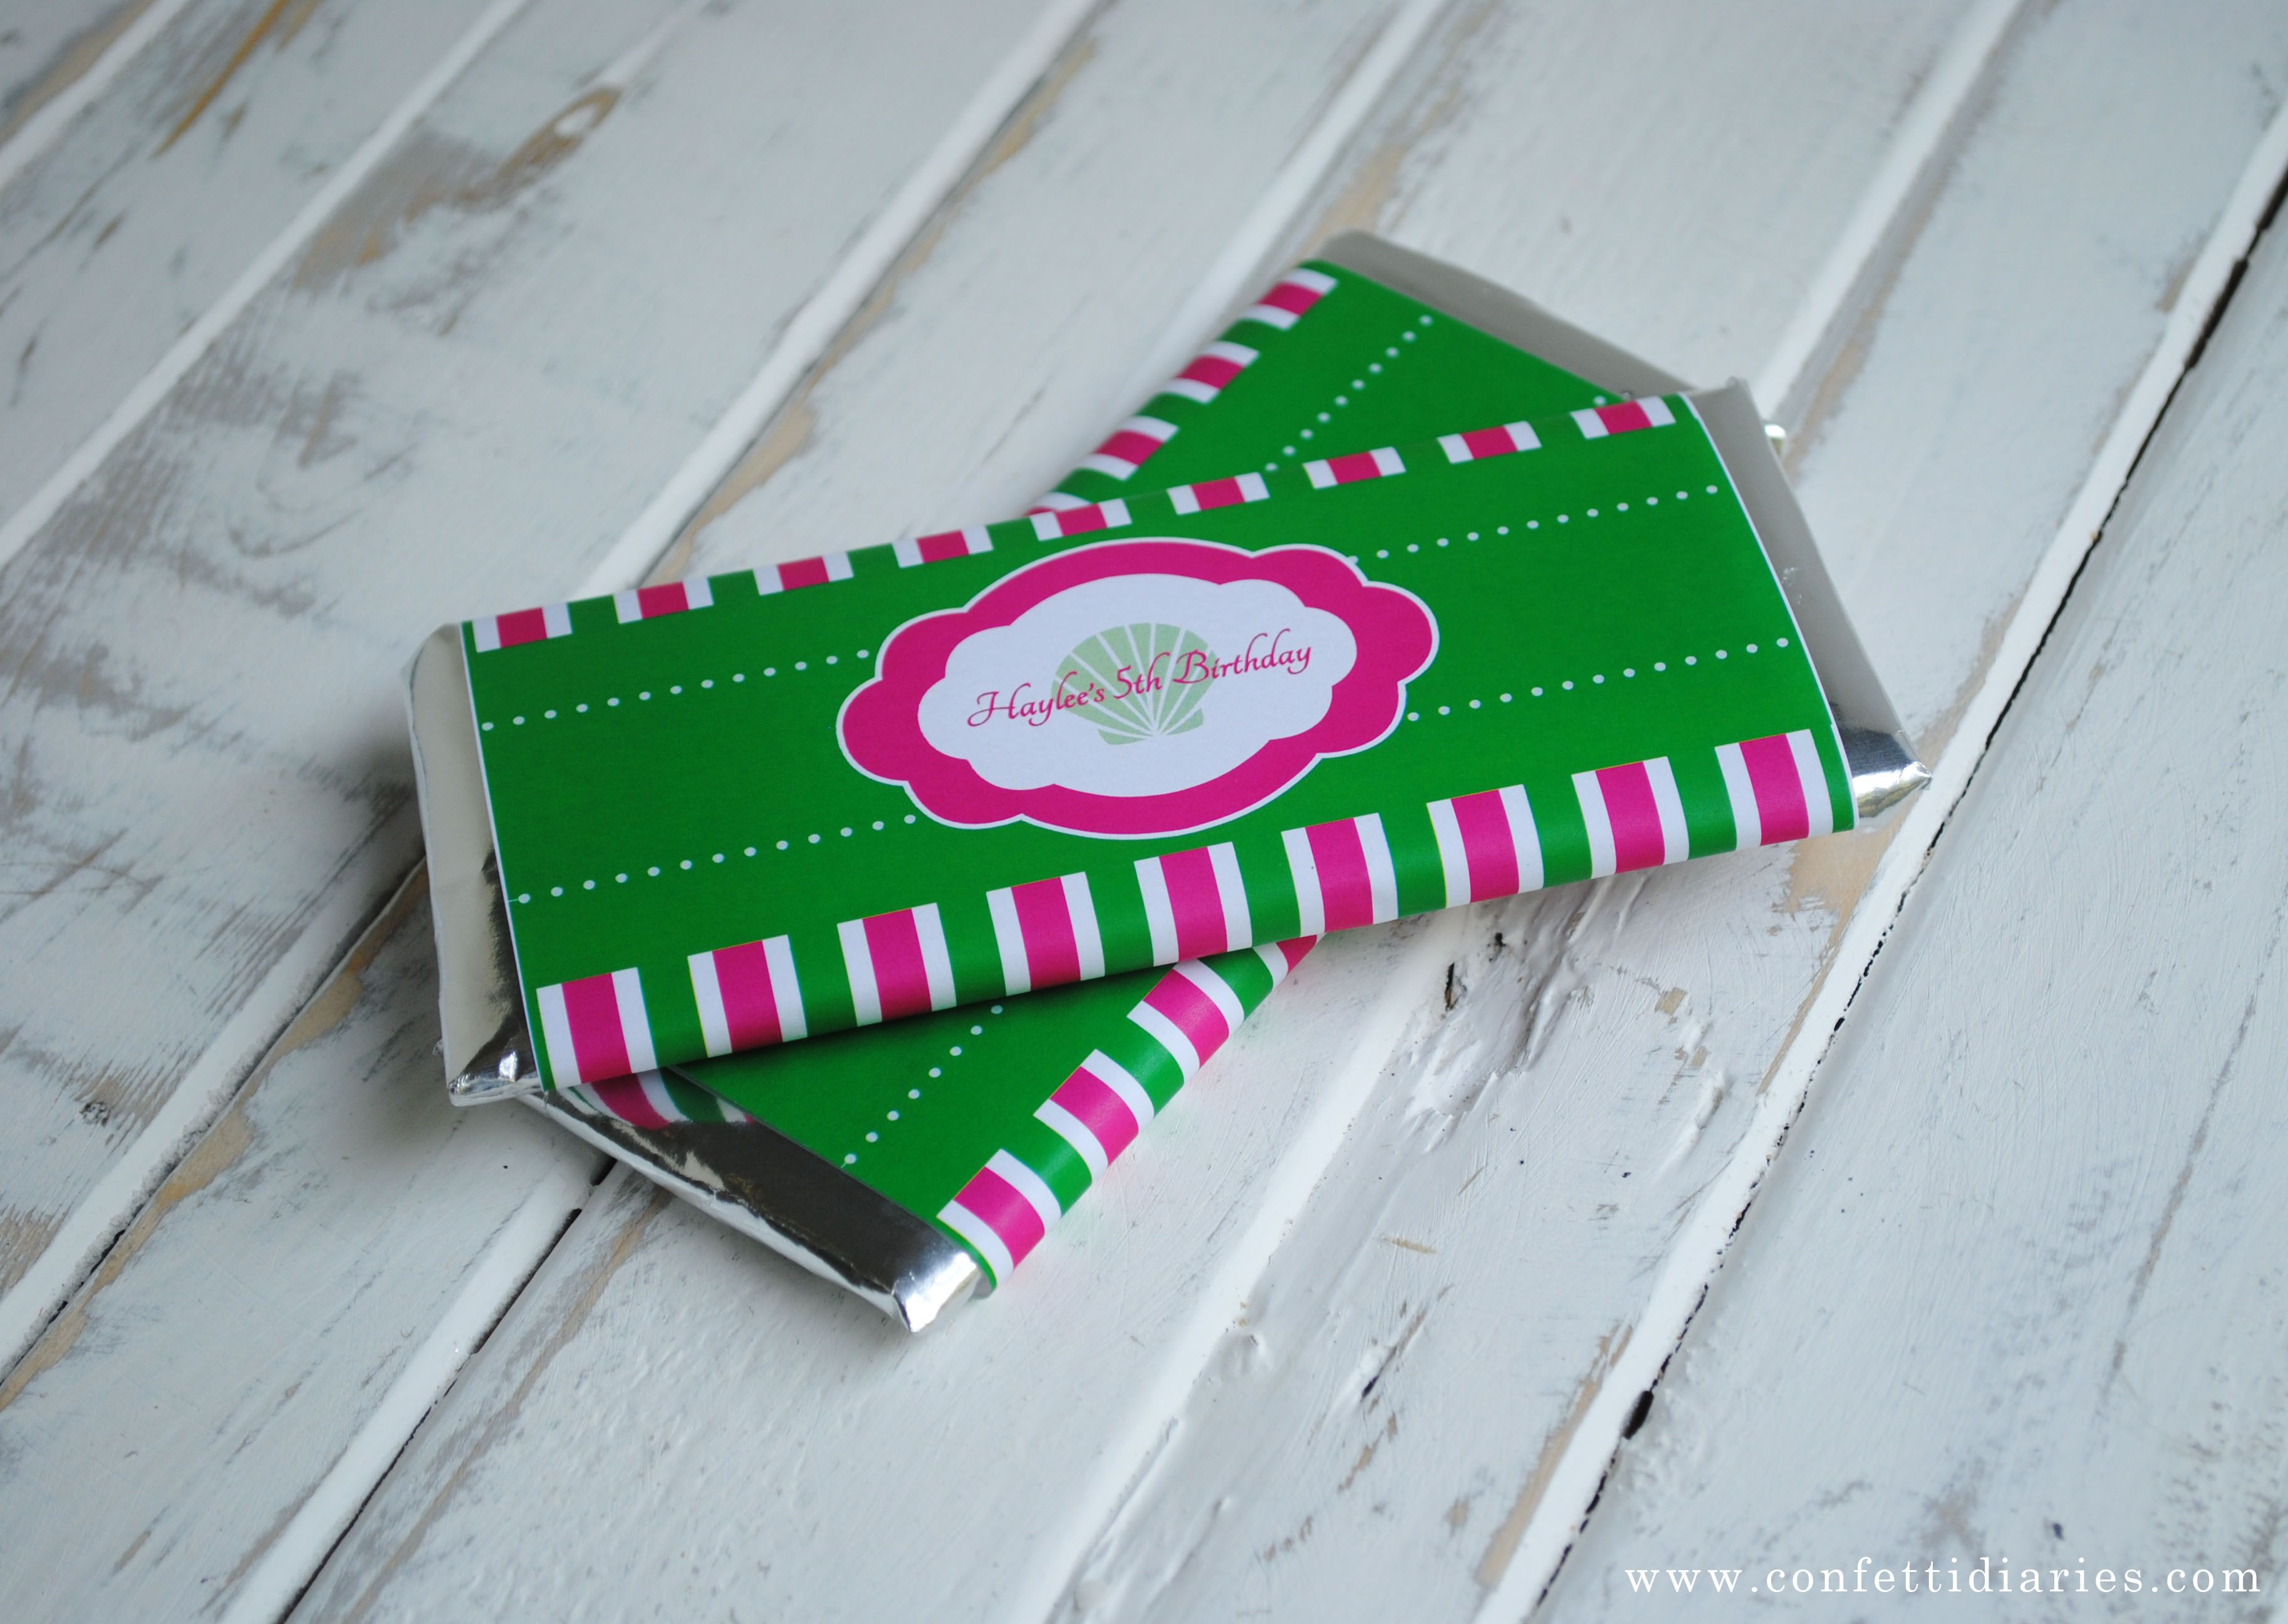 After designing many new party collections for Katarina's Paperie during the last few months, my favorite item to create is the chocolate bar wrapper. Maybe its because I'm a chocolate fiend, but m...